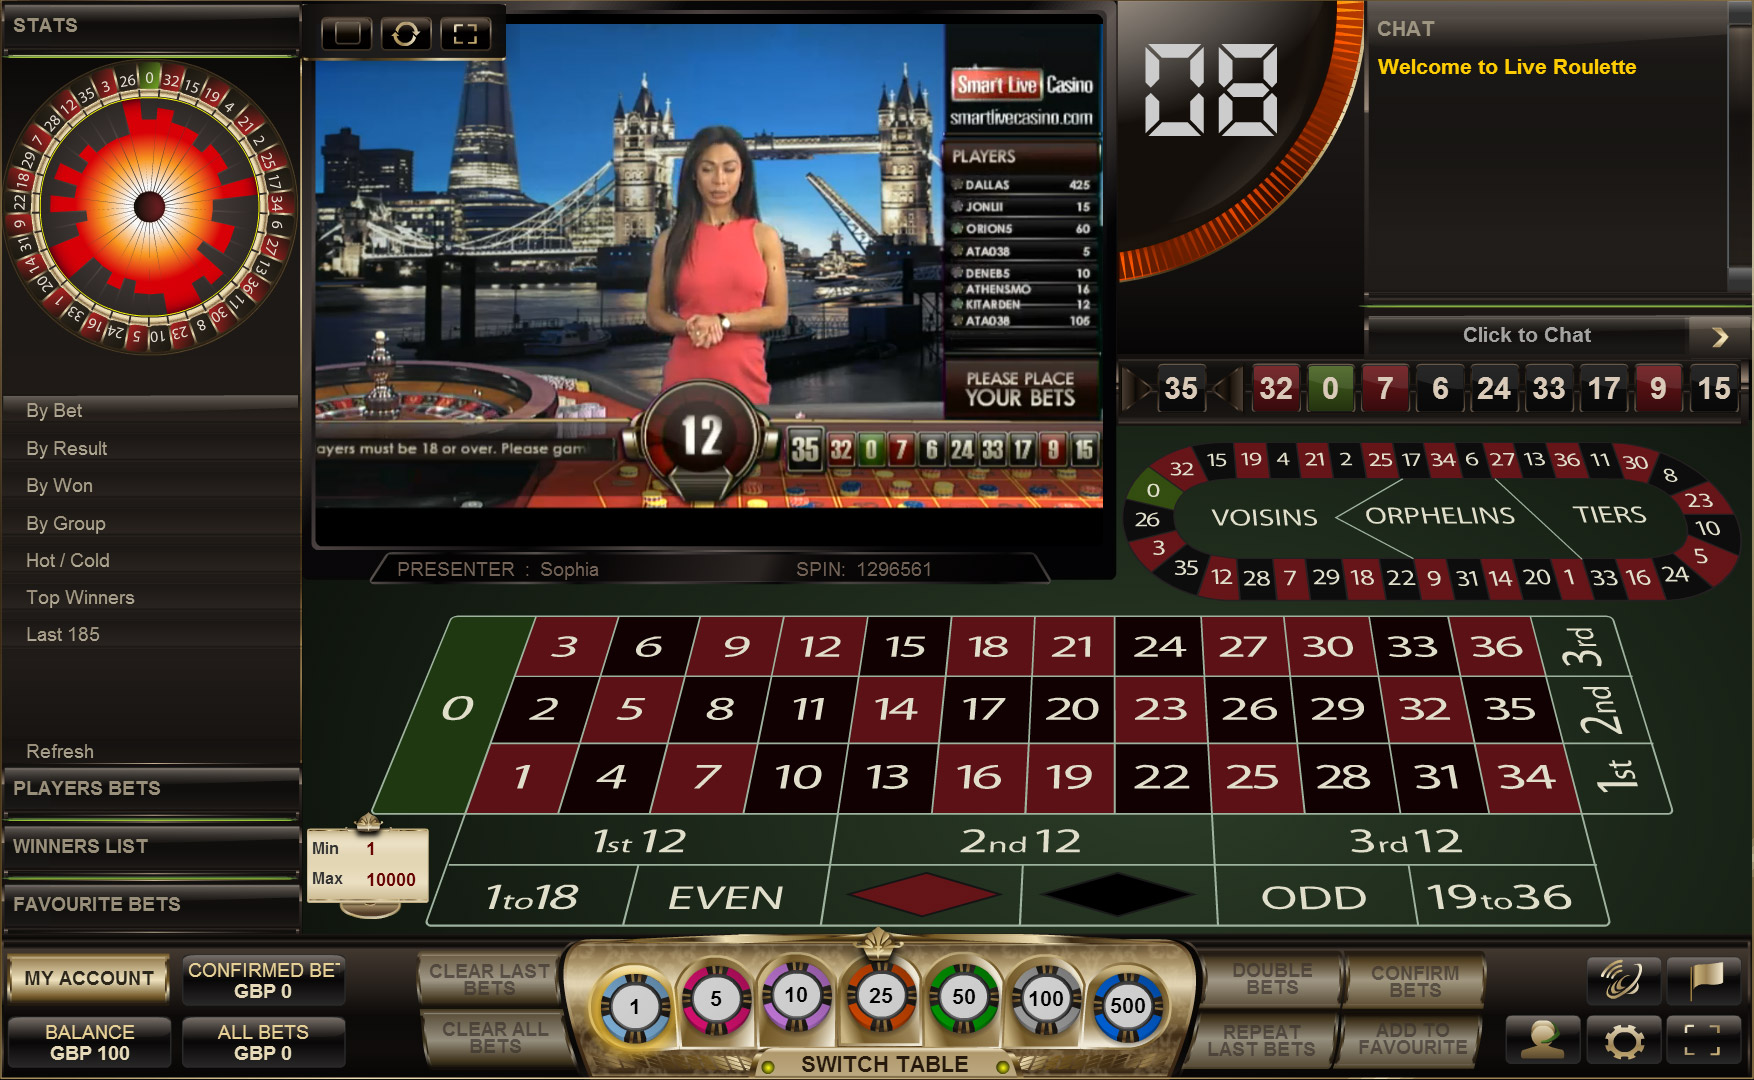 Maryland live roulette minimum bet